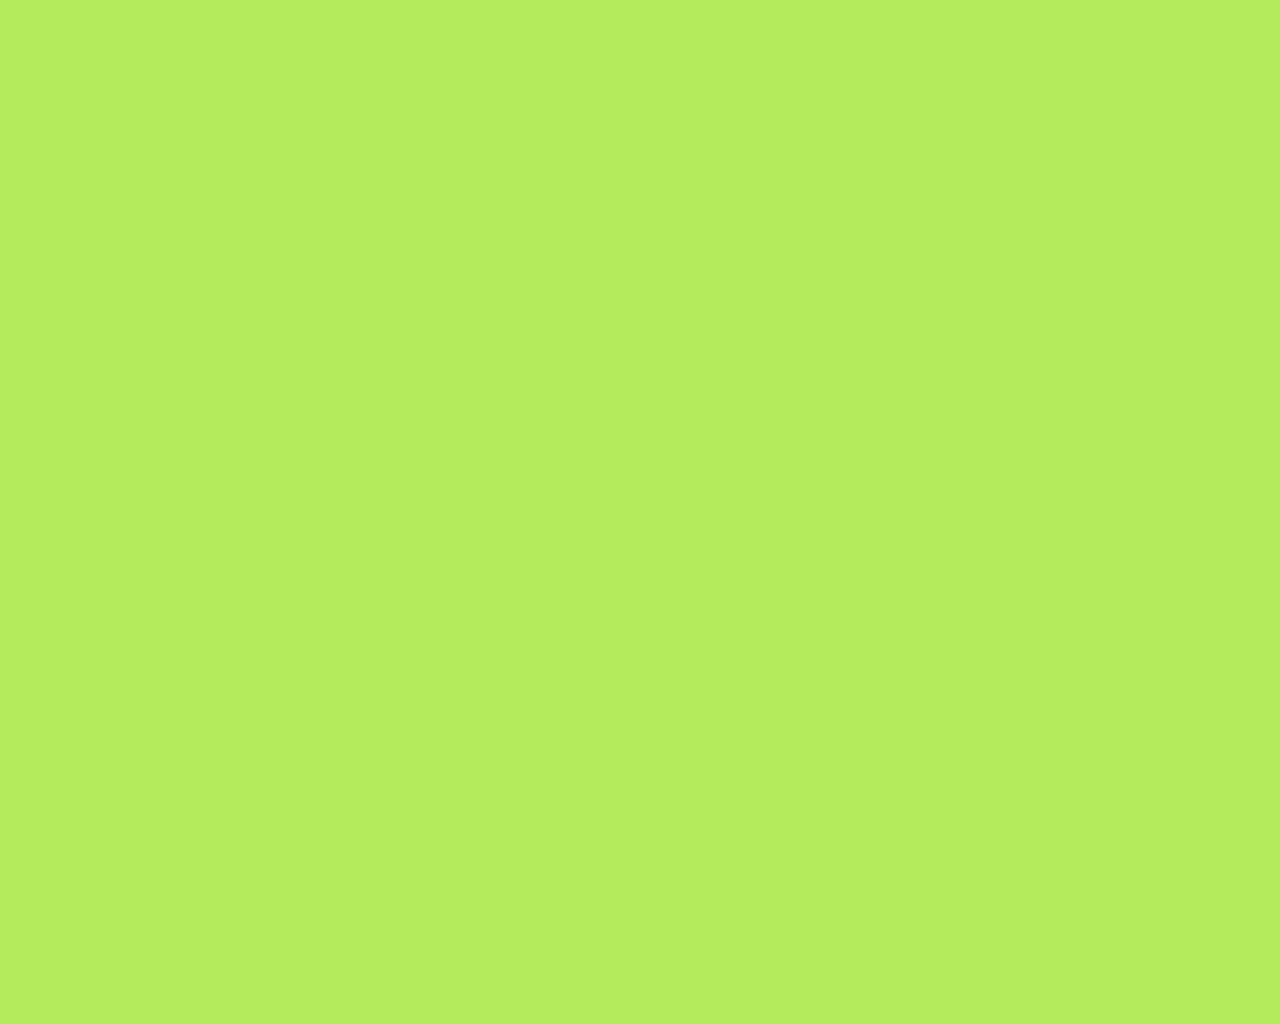 1280x1024 Inchworm Solid Color Background